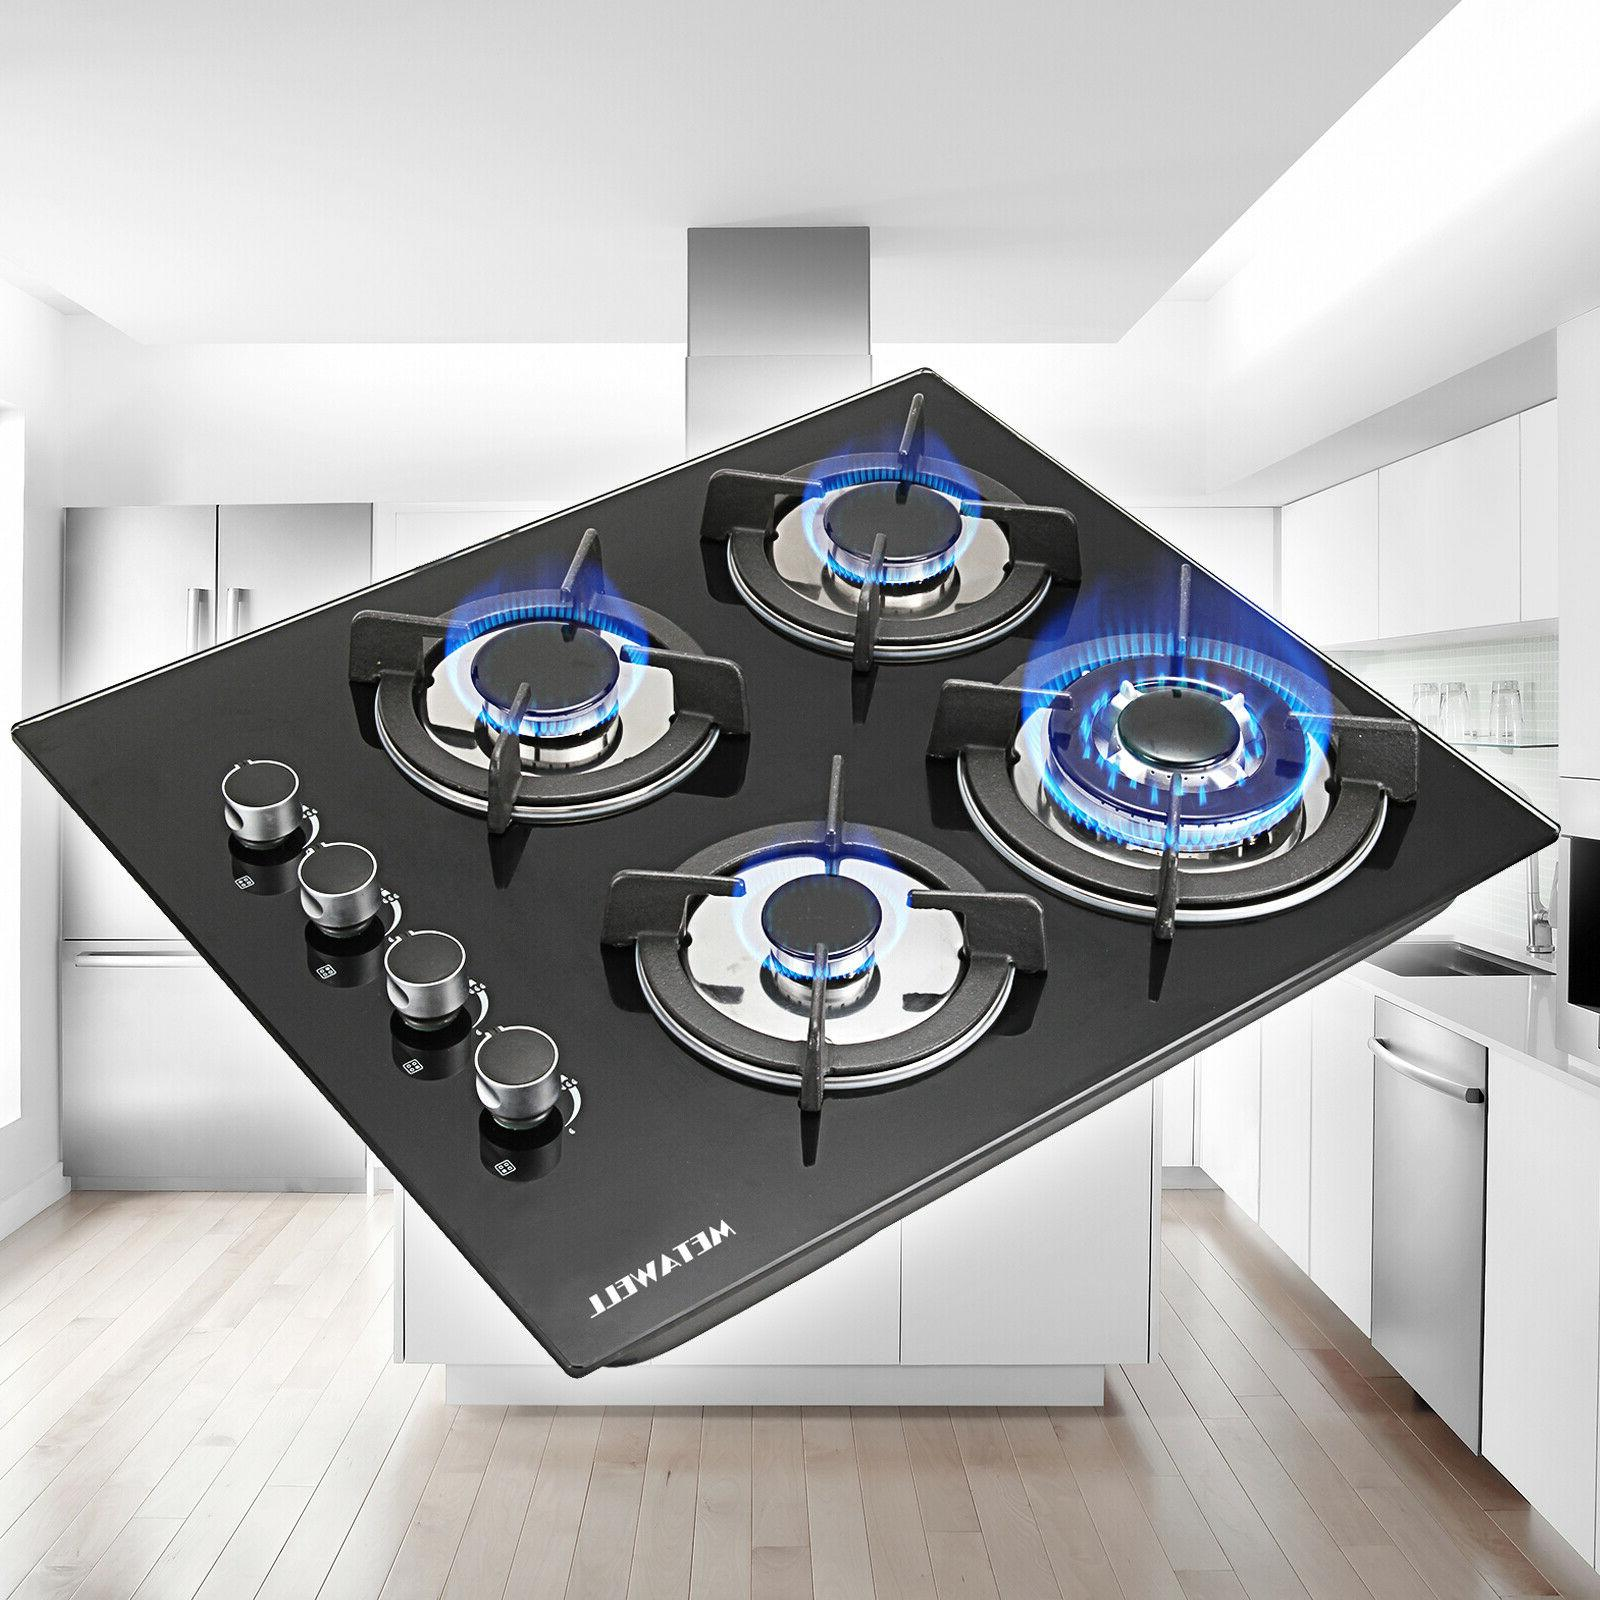 24 tempered glass hob built in 4